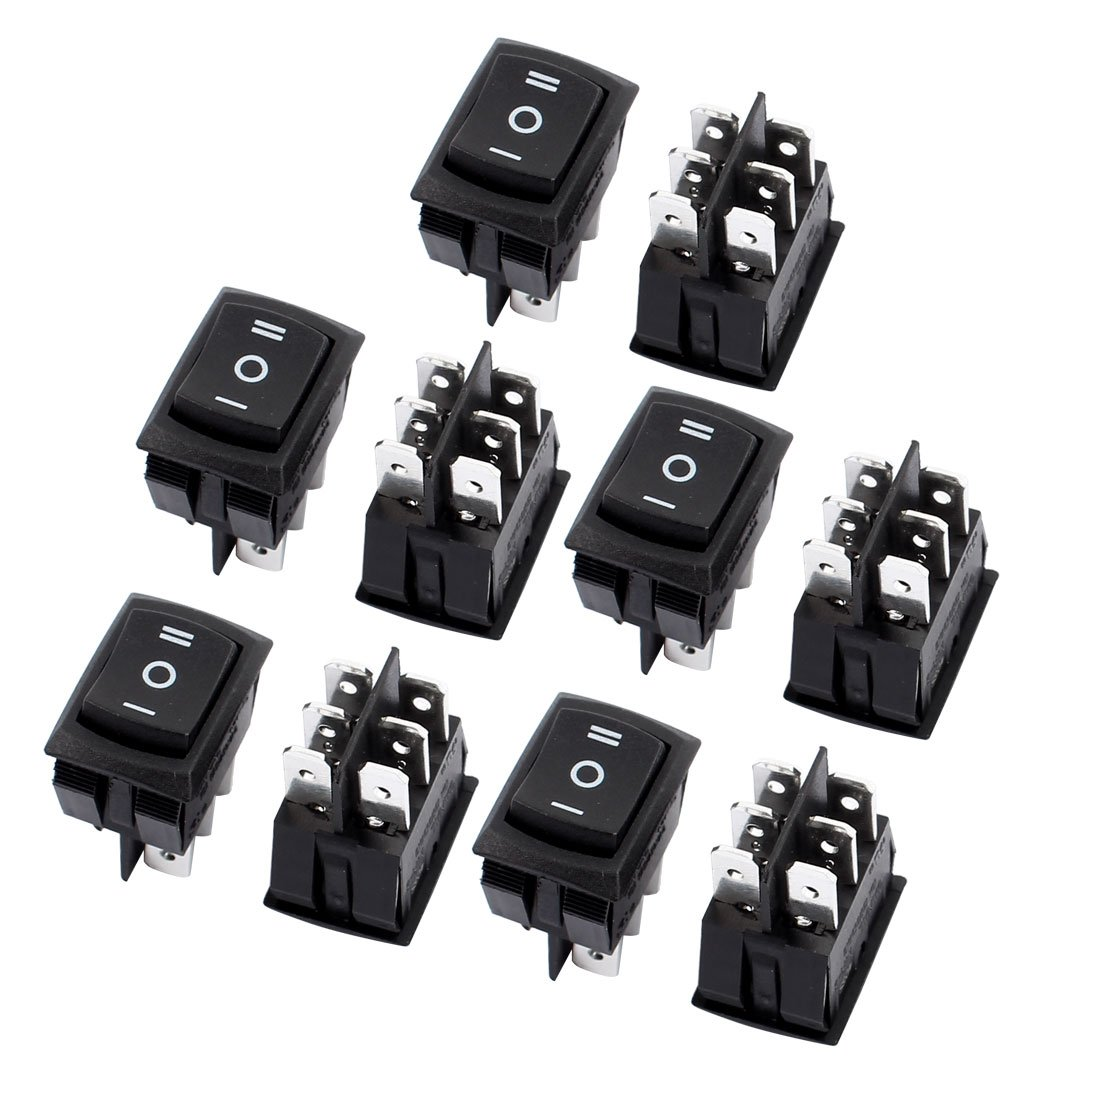 Uxcell 10 Pcs Dpdt On Off 3 Position Snap In Boat Miniature Toggle Switch Spst Onoff Rocker 10a 250v 125v Ac Home Improvement